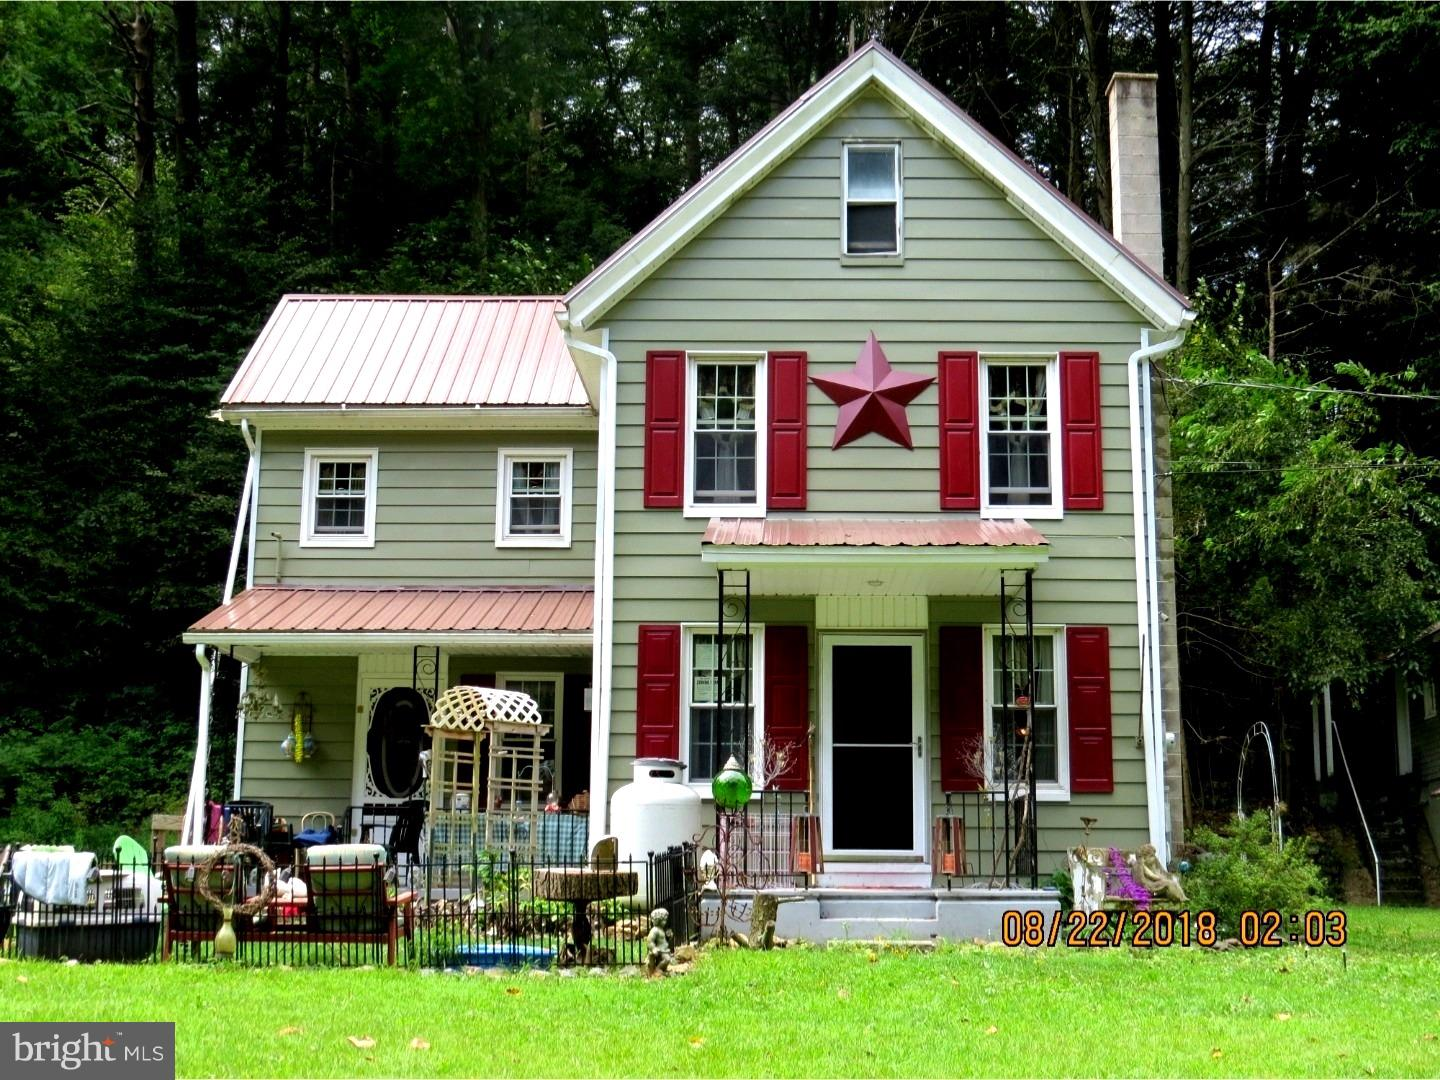 132 GEARY WOLFE ROAD, PINE GROVE, PA 17963